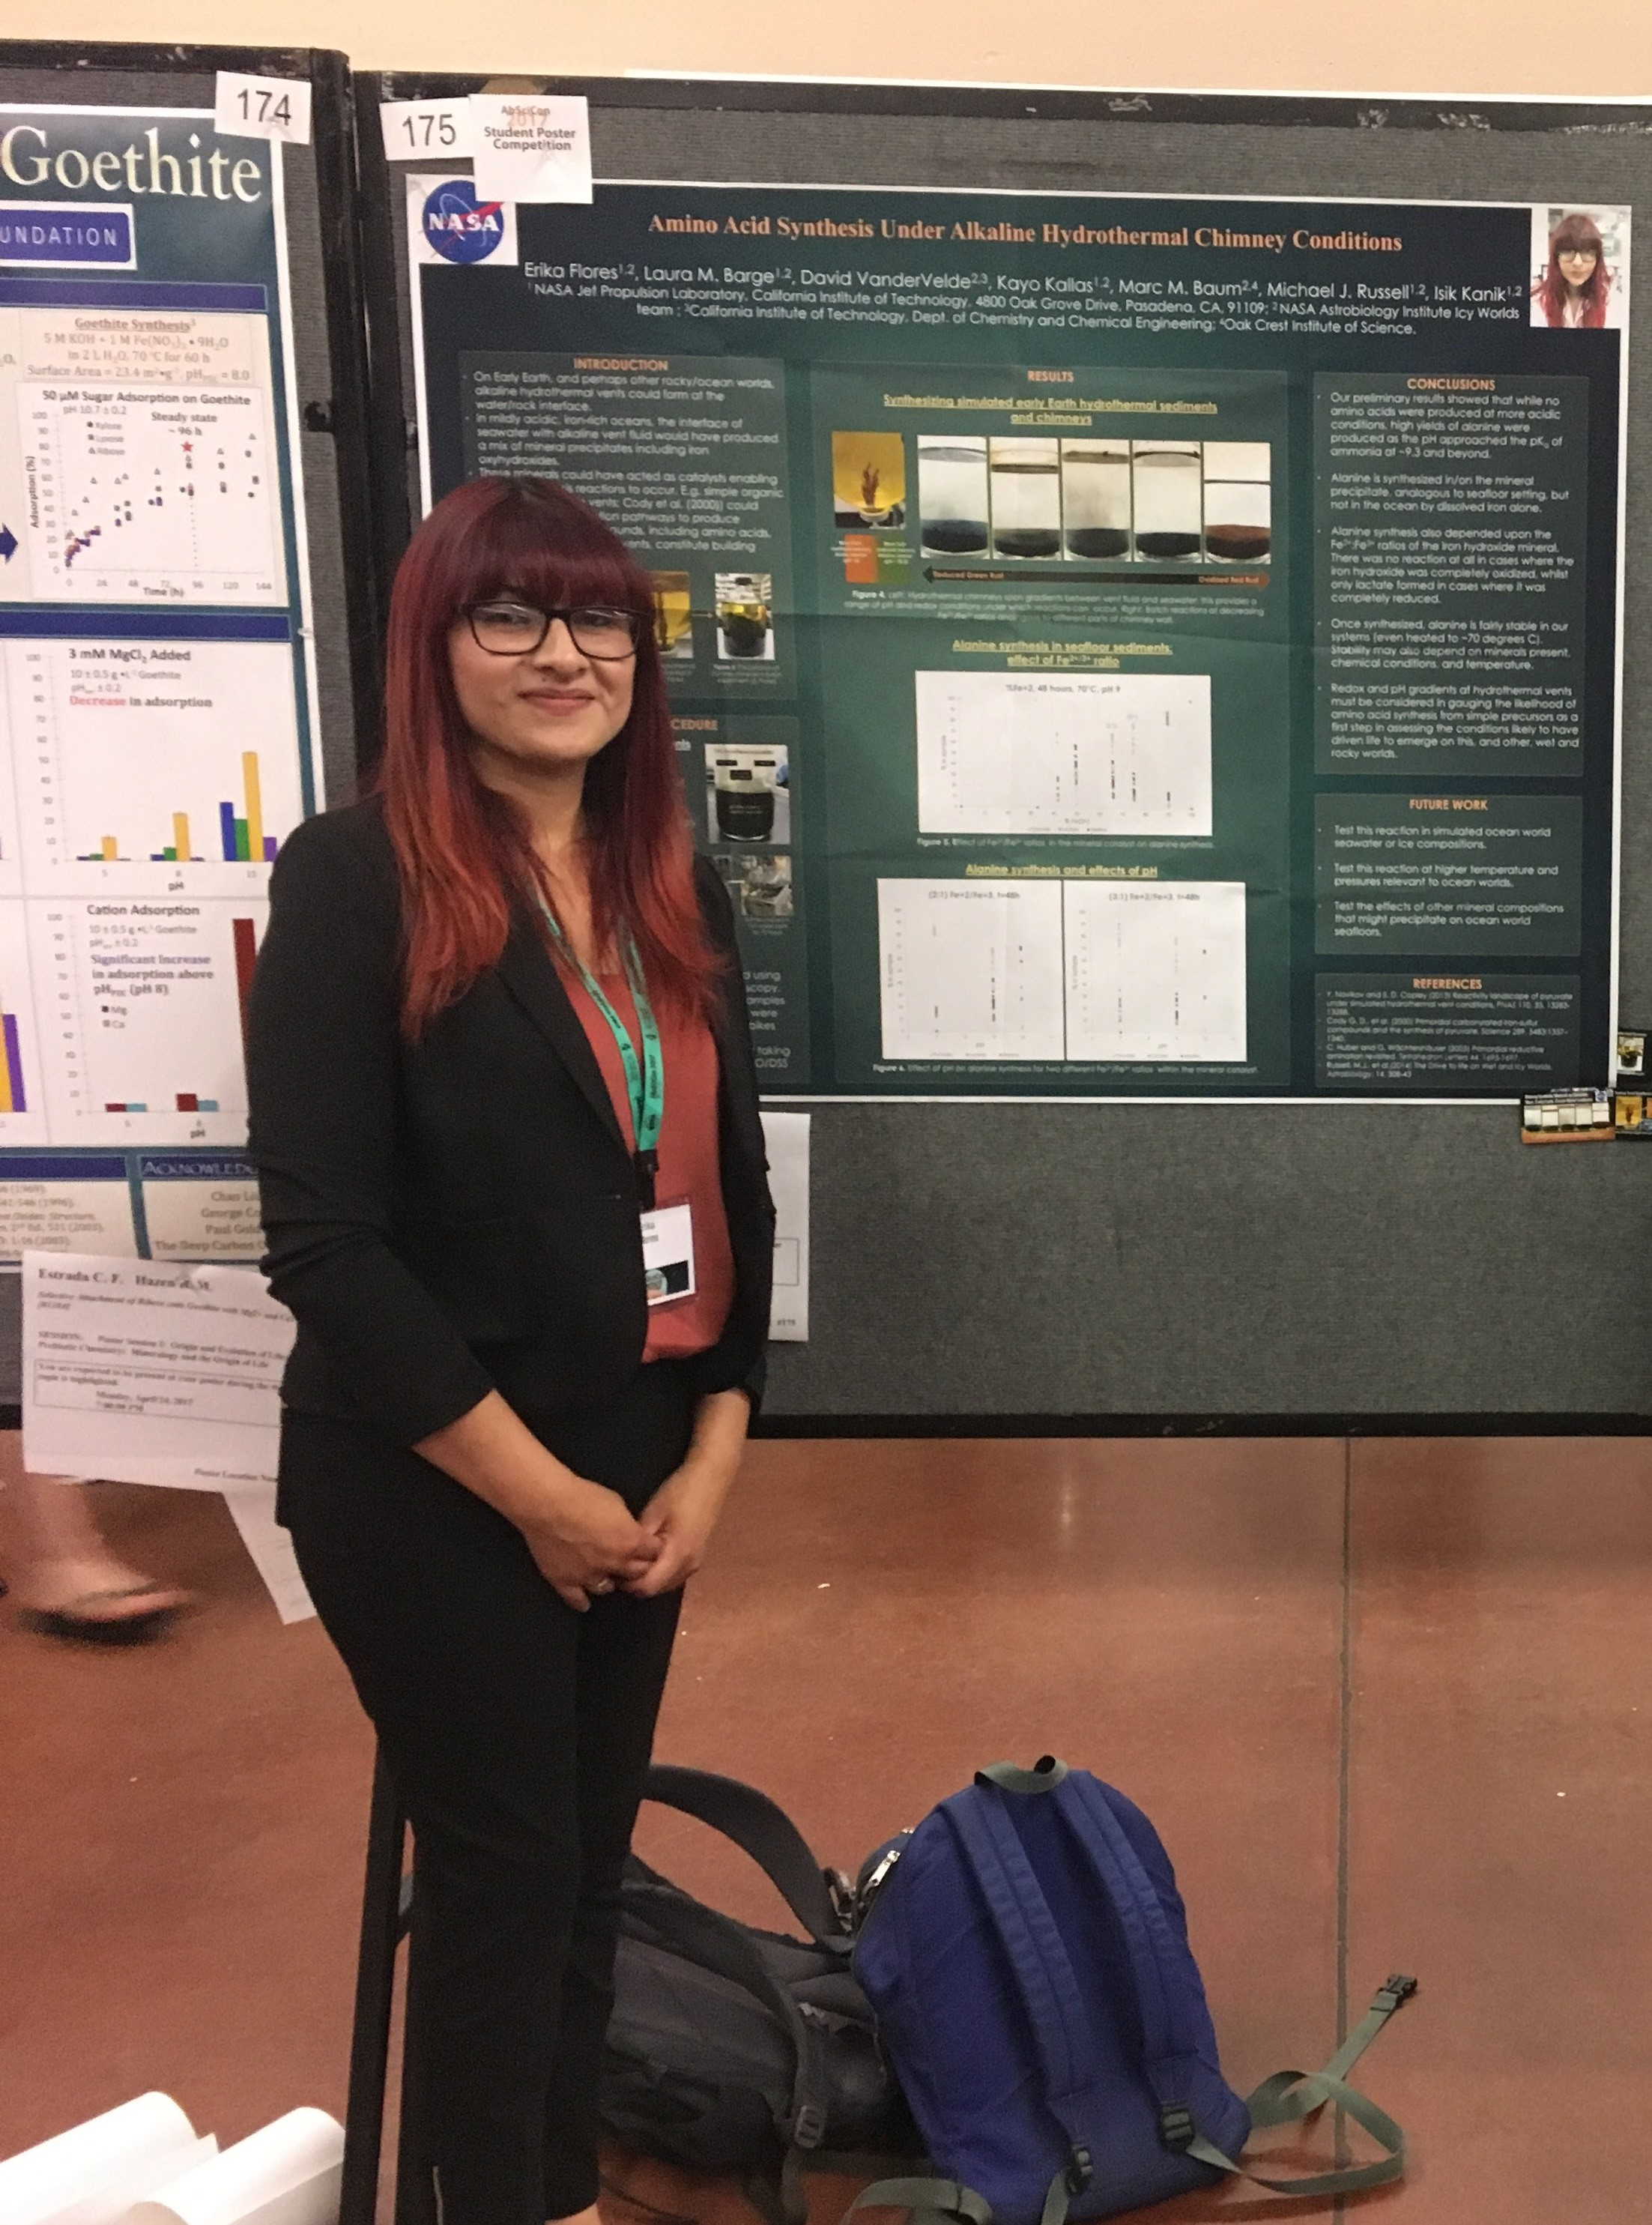 Erika Flores poses with her science poster